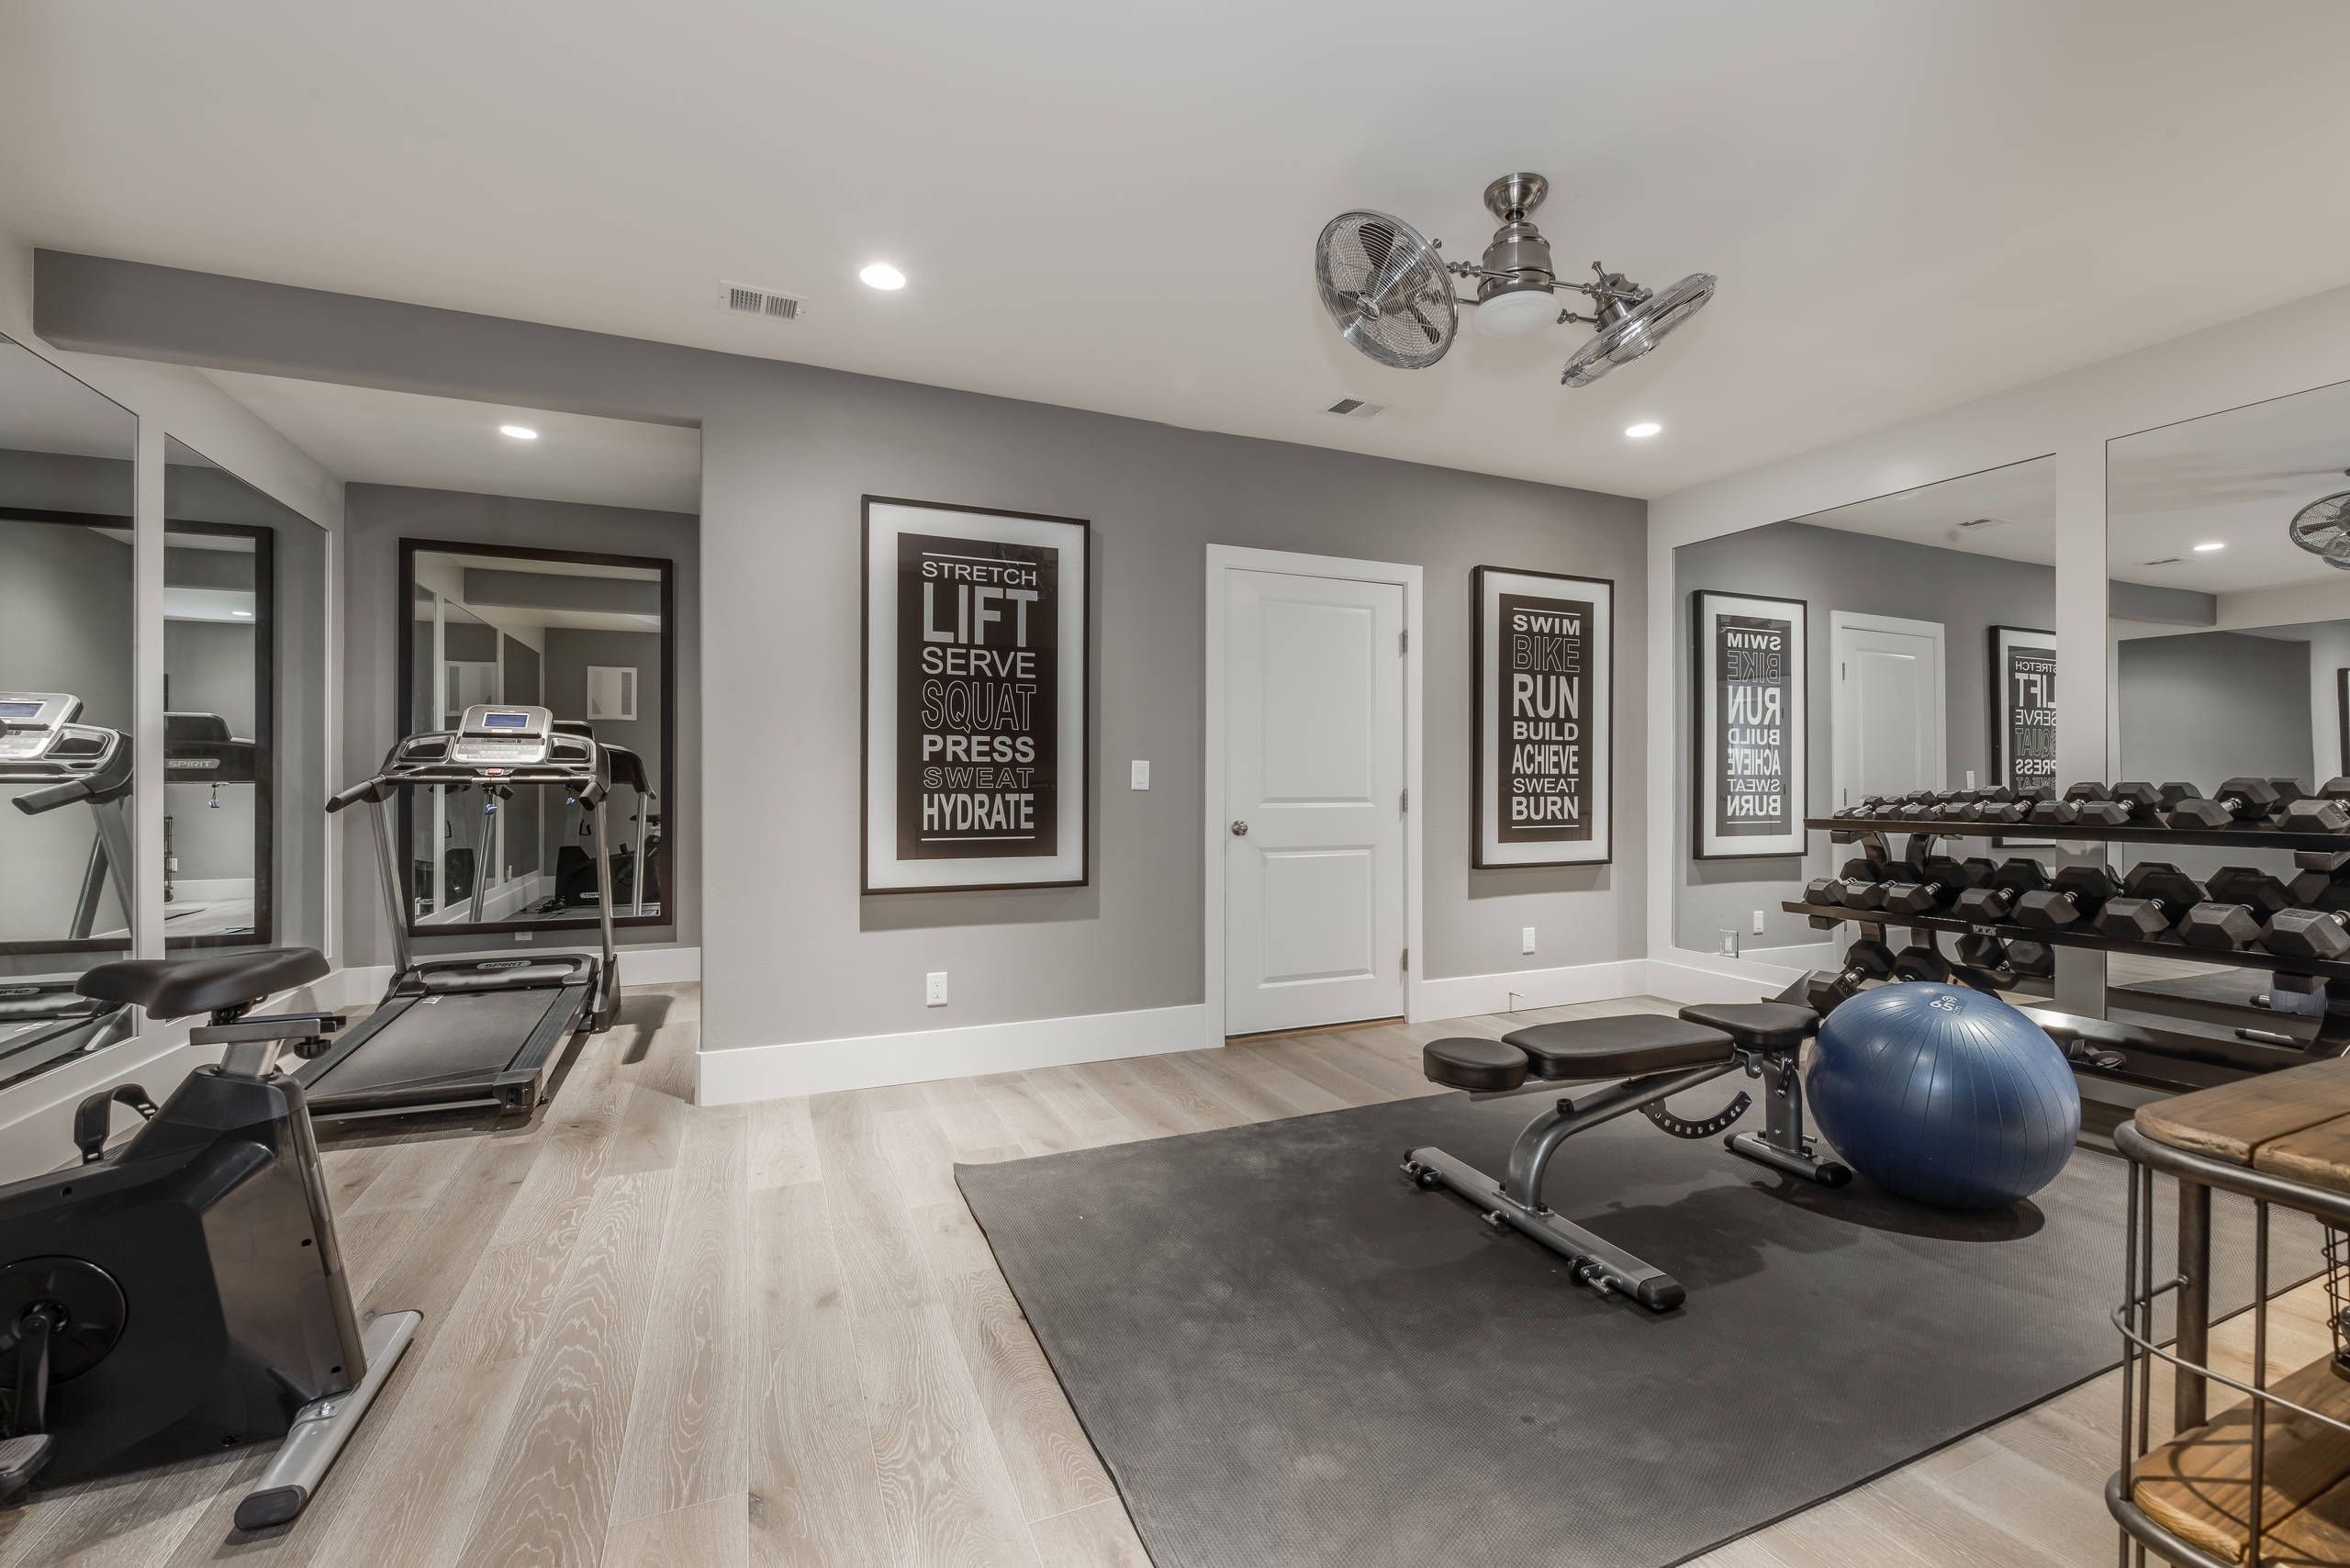 75 Beautiful Home Gym Pictures Ideas September 2020 Houzz